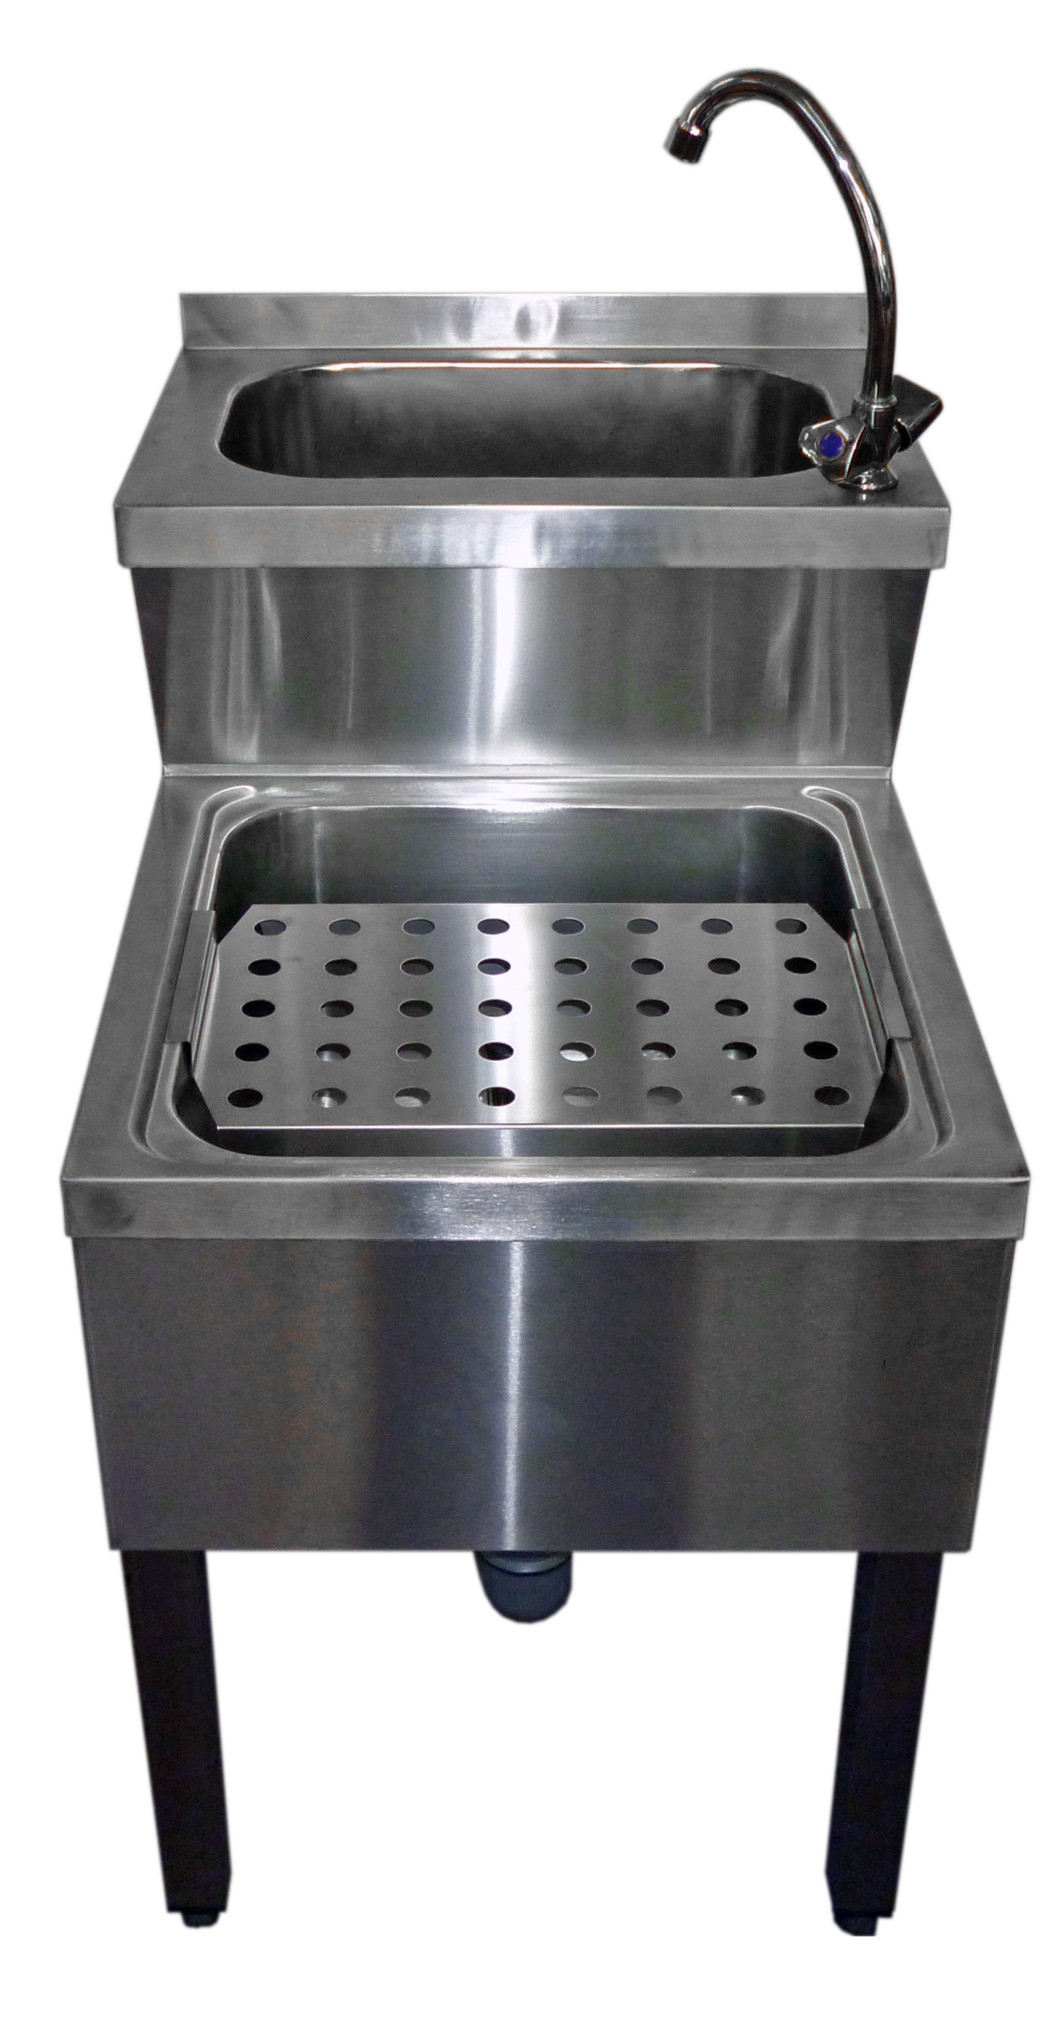 Janitorial Sink Unit - Hand Basin/Sink Combo (sinks)